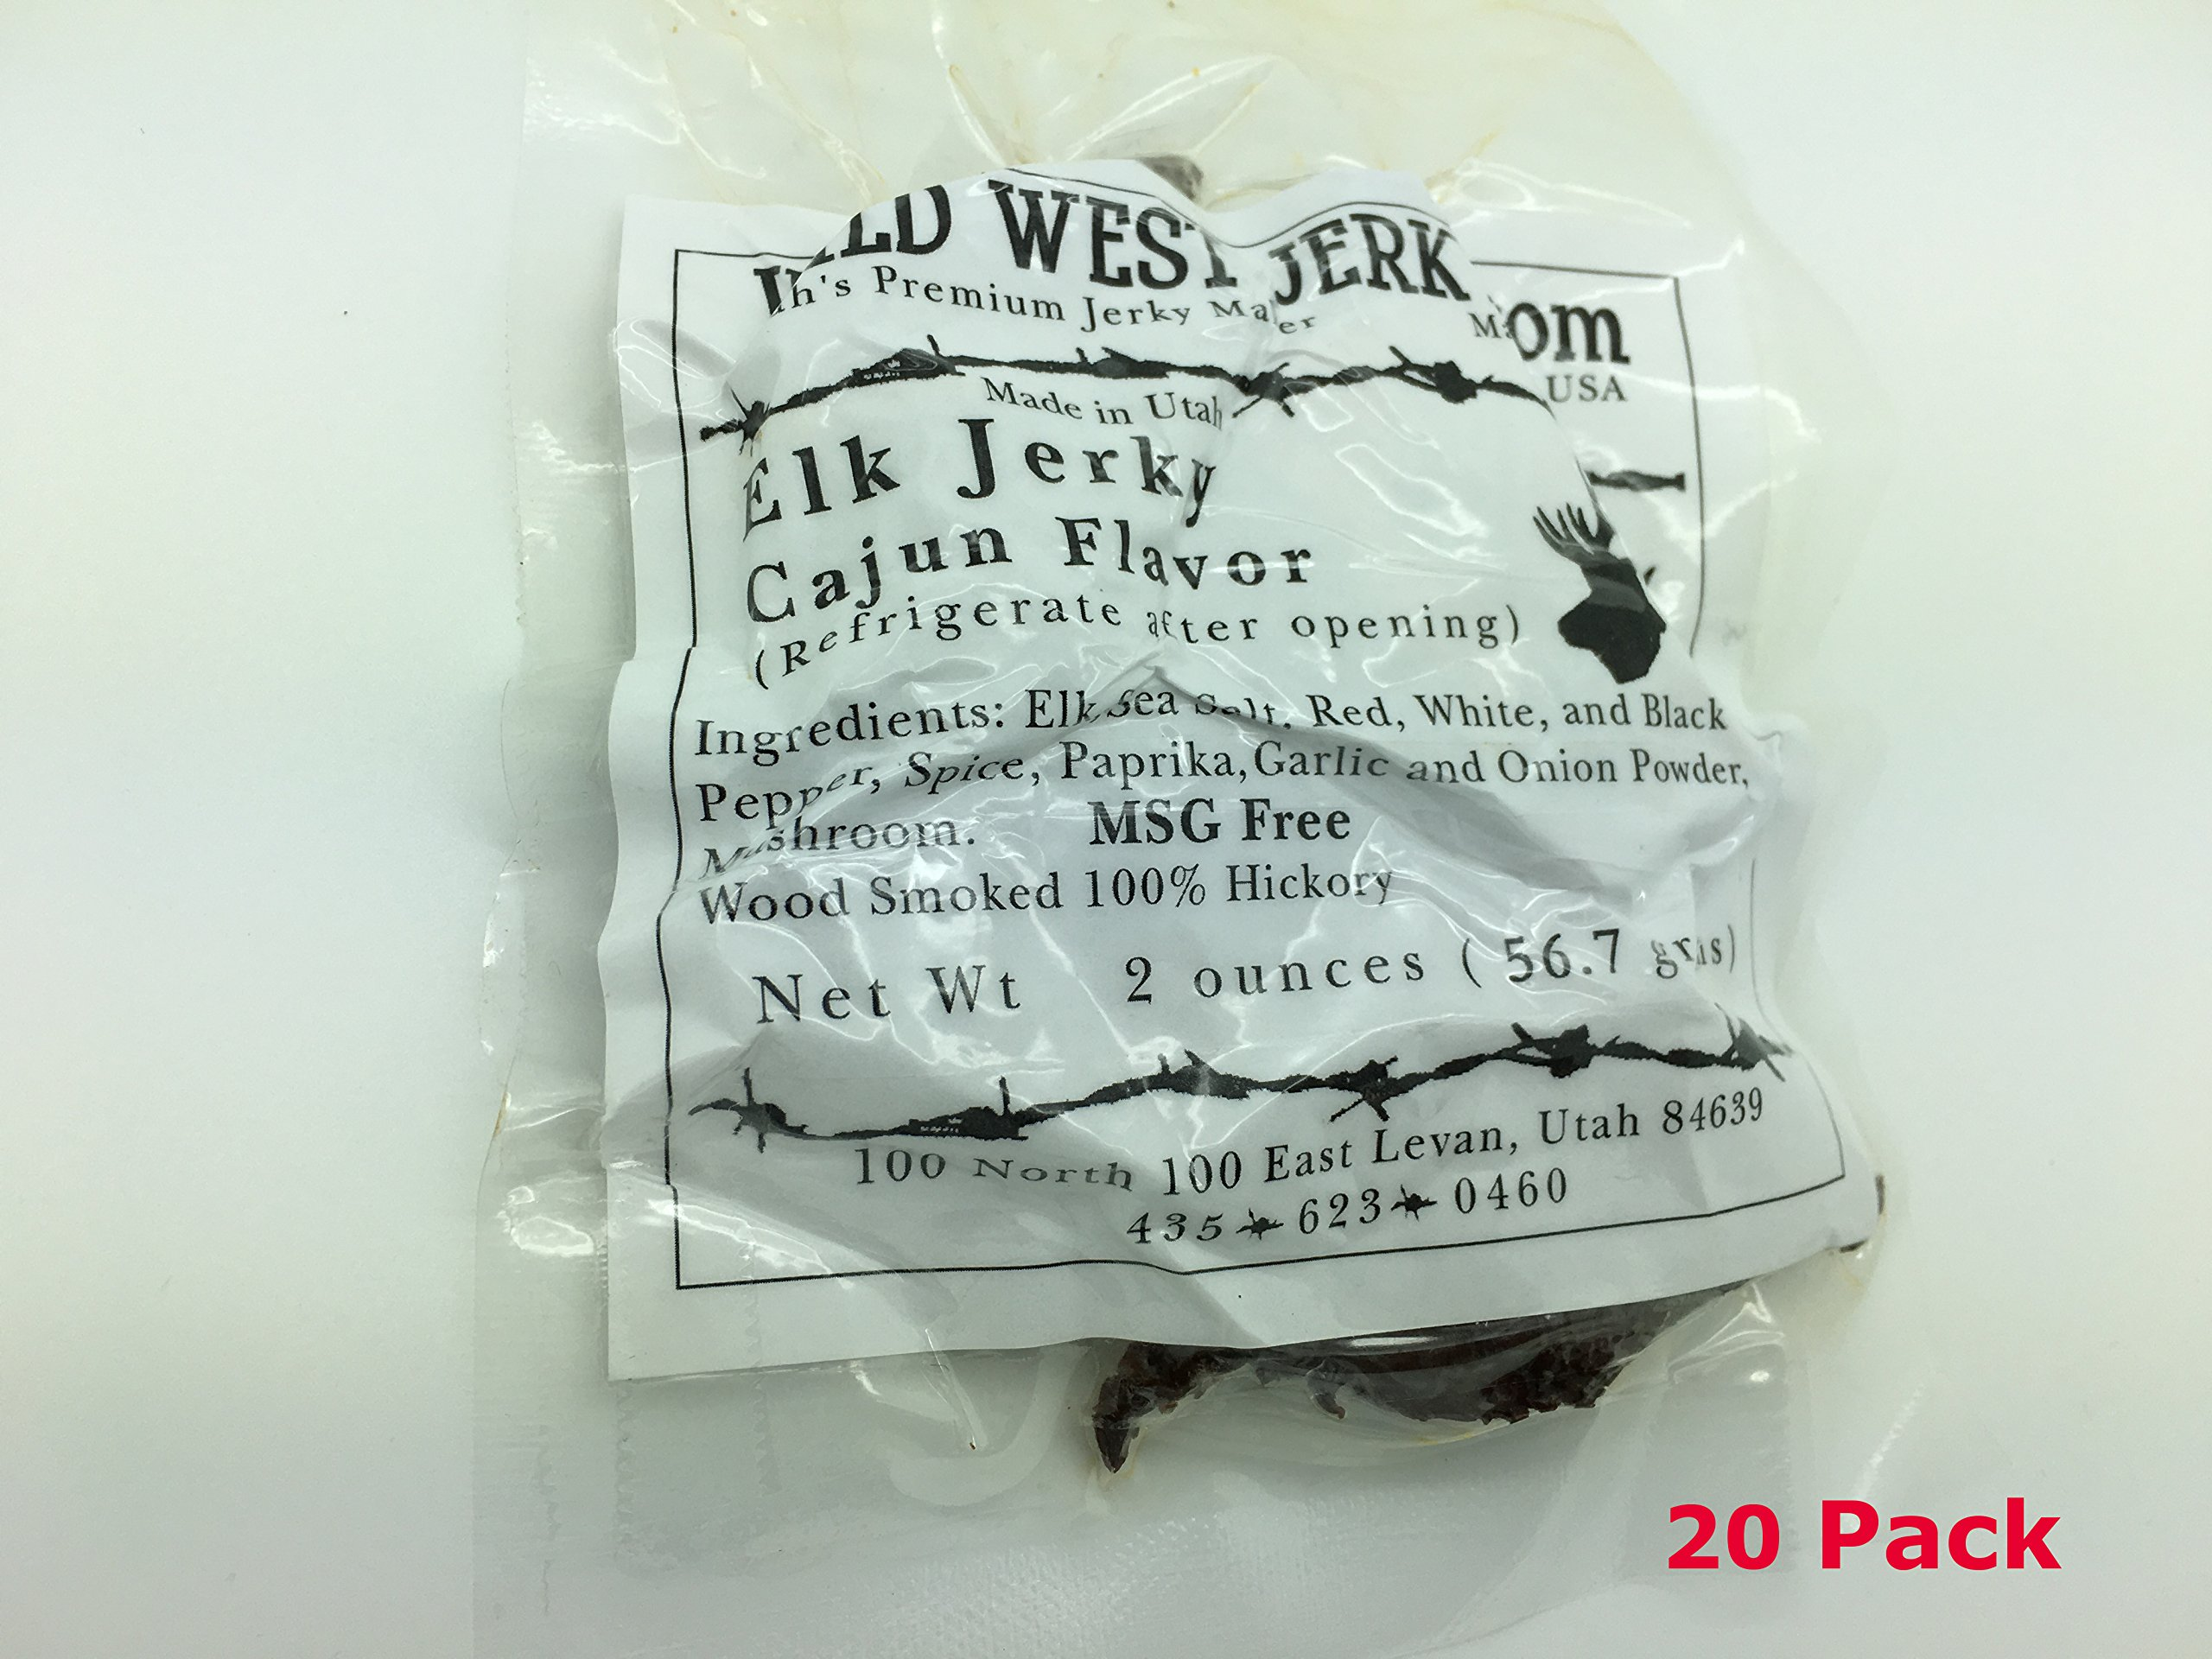 Wild West Jerky #1 Best Premium 100% Natural Grass Fed Hand Stripped 2 OZ. Thick Cut Delicious Tasty Bold Flavor Elk Jerky from Utah USA - Wood Smoked with Hickory Wood (Cajun 20 Pack) by Wild West Jerky